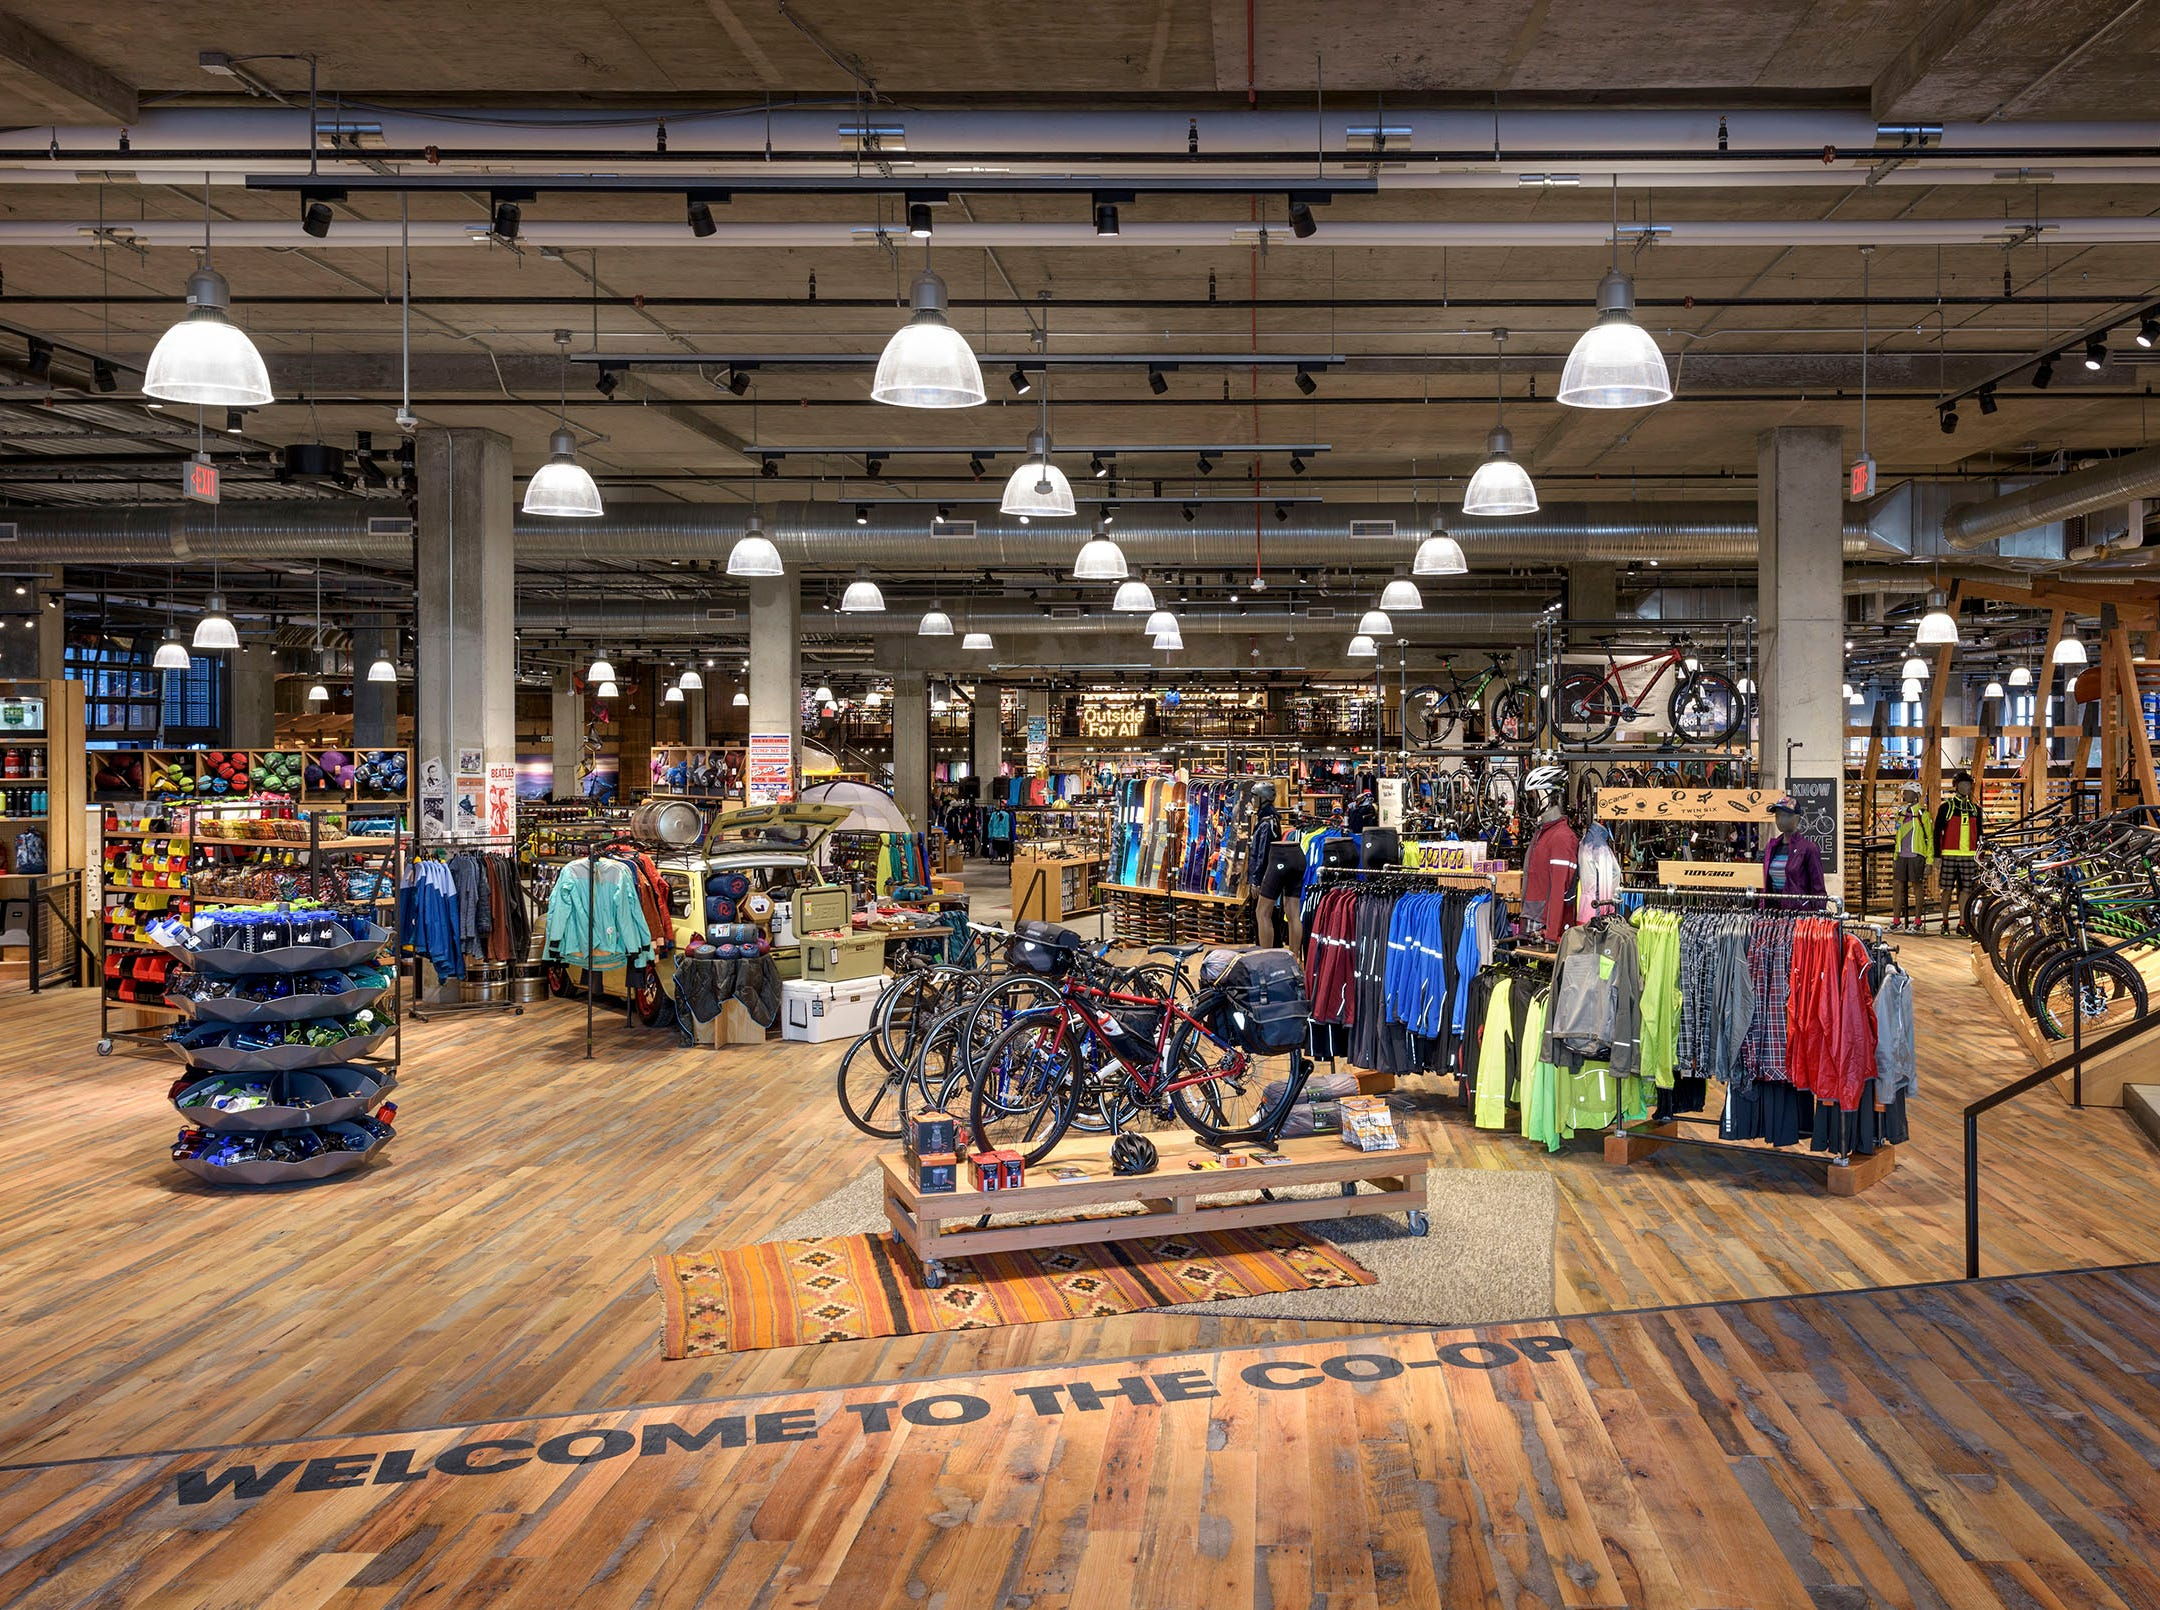 The new requirements for brands sold at REI include a ban on products that contain certain chemicals, a code of conduct for manufacturers, and animal welfare standards for down and wool supply chains.